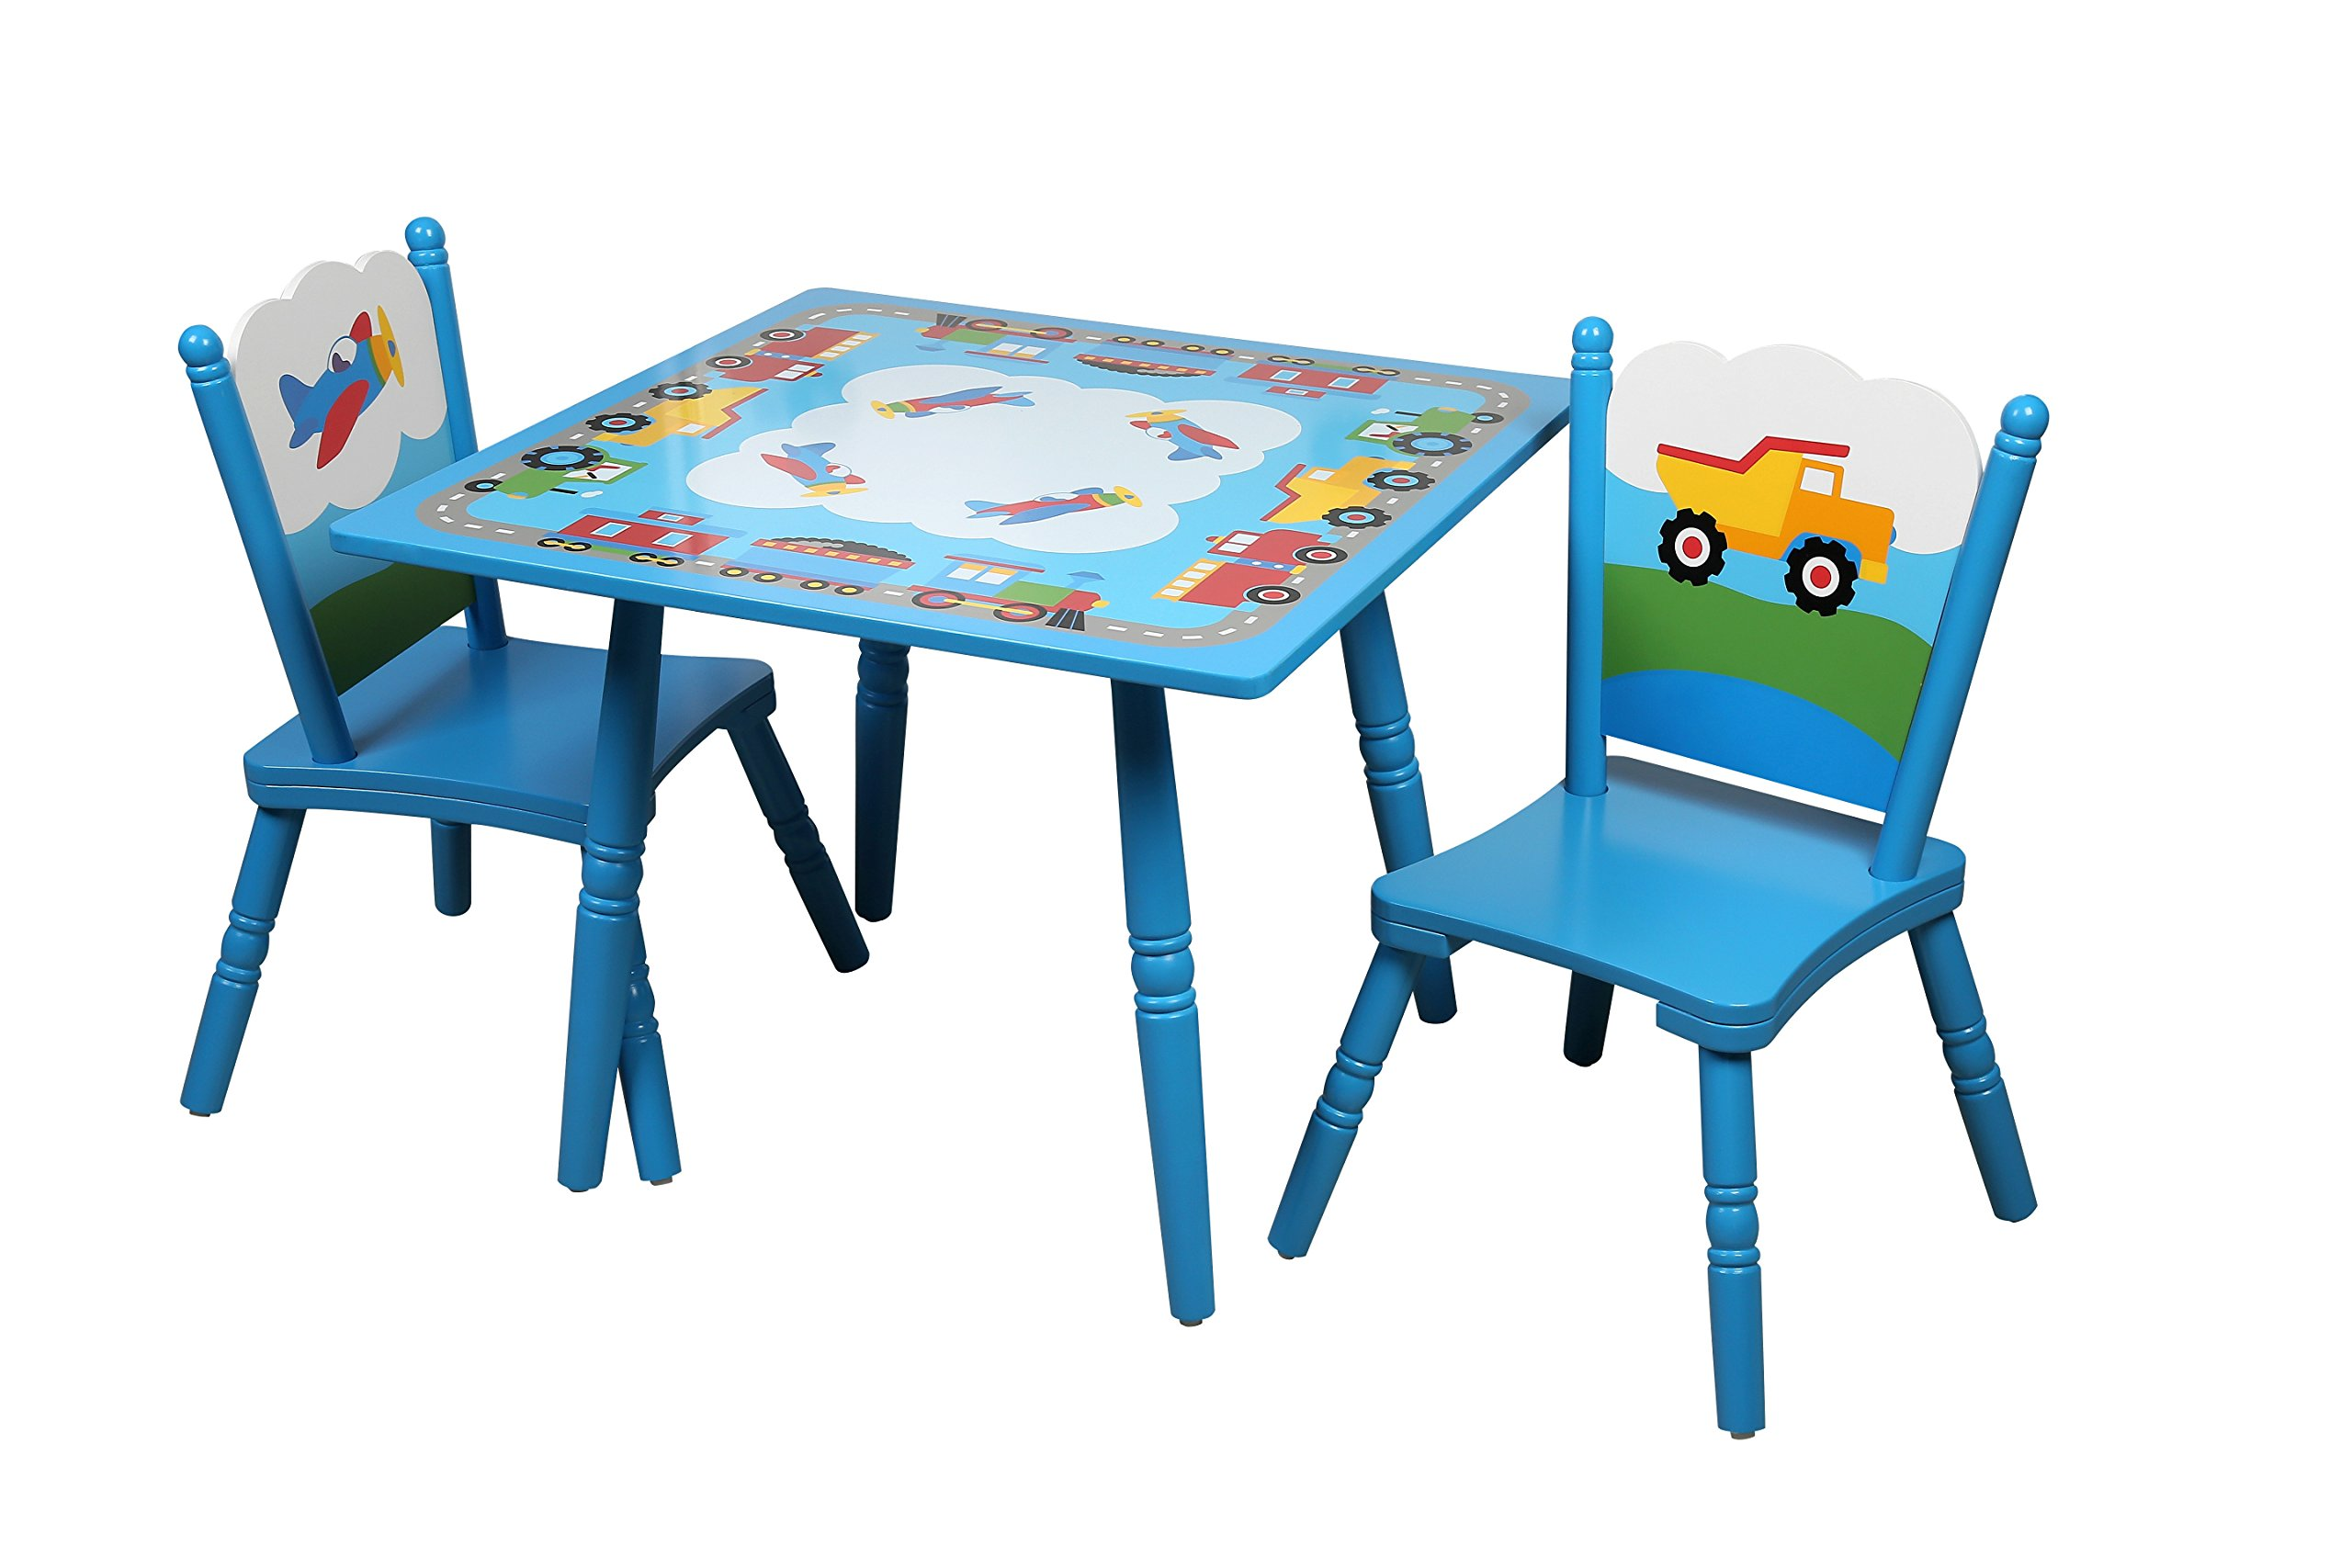 Olive Kids Trains, Planes, Trucks Table & Chair Set by Olive Kids (Image #2)